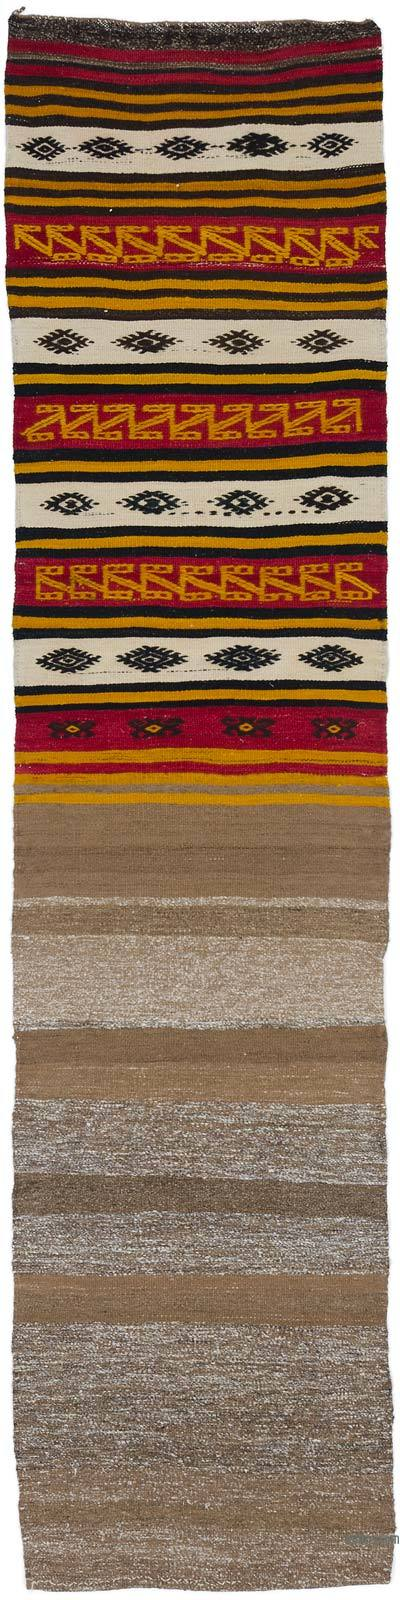 "Vintage Turkish Kilim Runner - 1'11"" x 8'1"" (23 in. x 97 in.)"